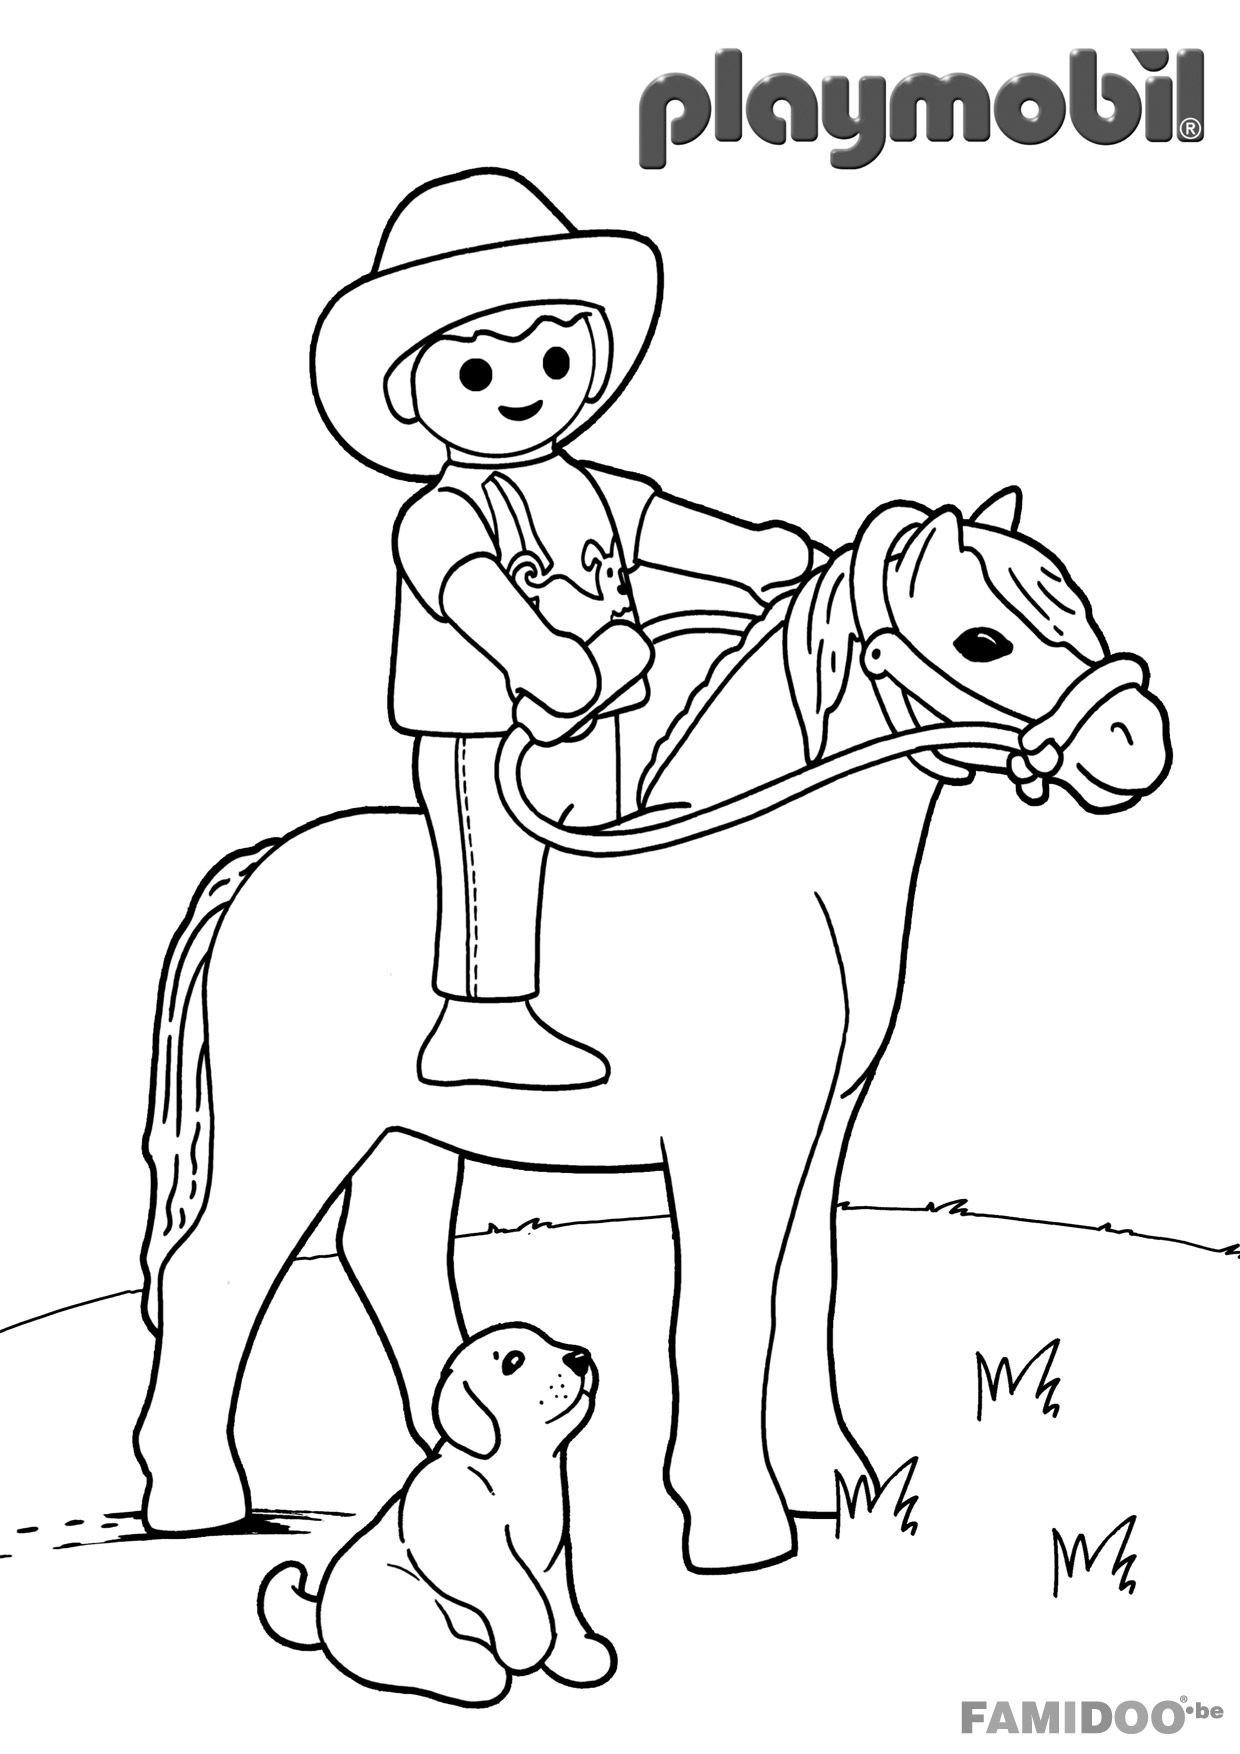 Fee Playmobil Coloriage Licorne.Coloriage A Imprimer Personnages Celebres Playmobil Numero 48246